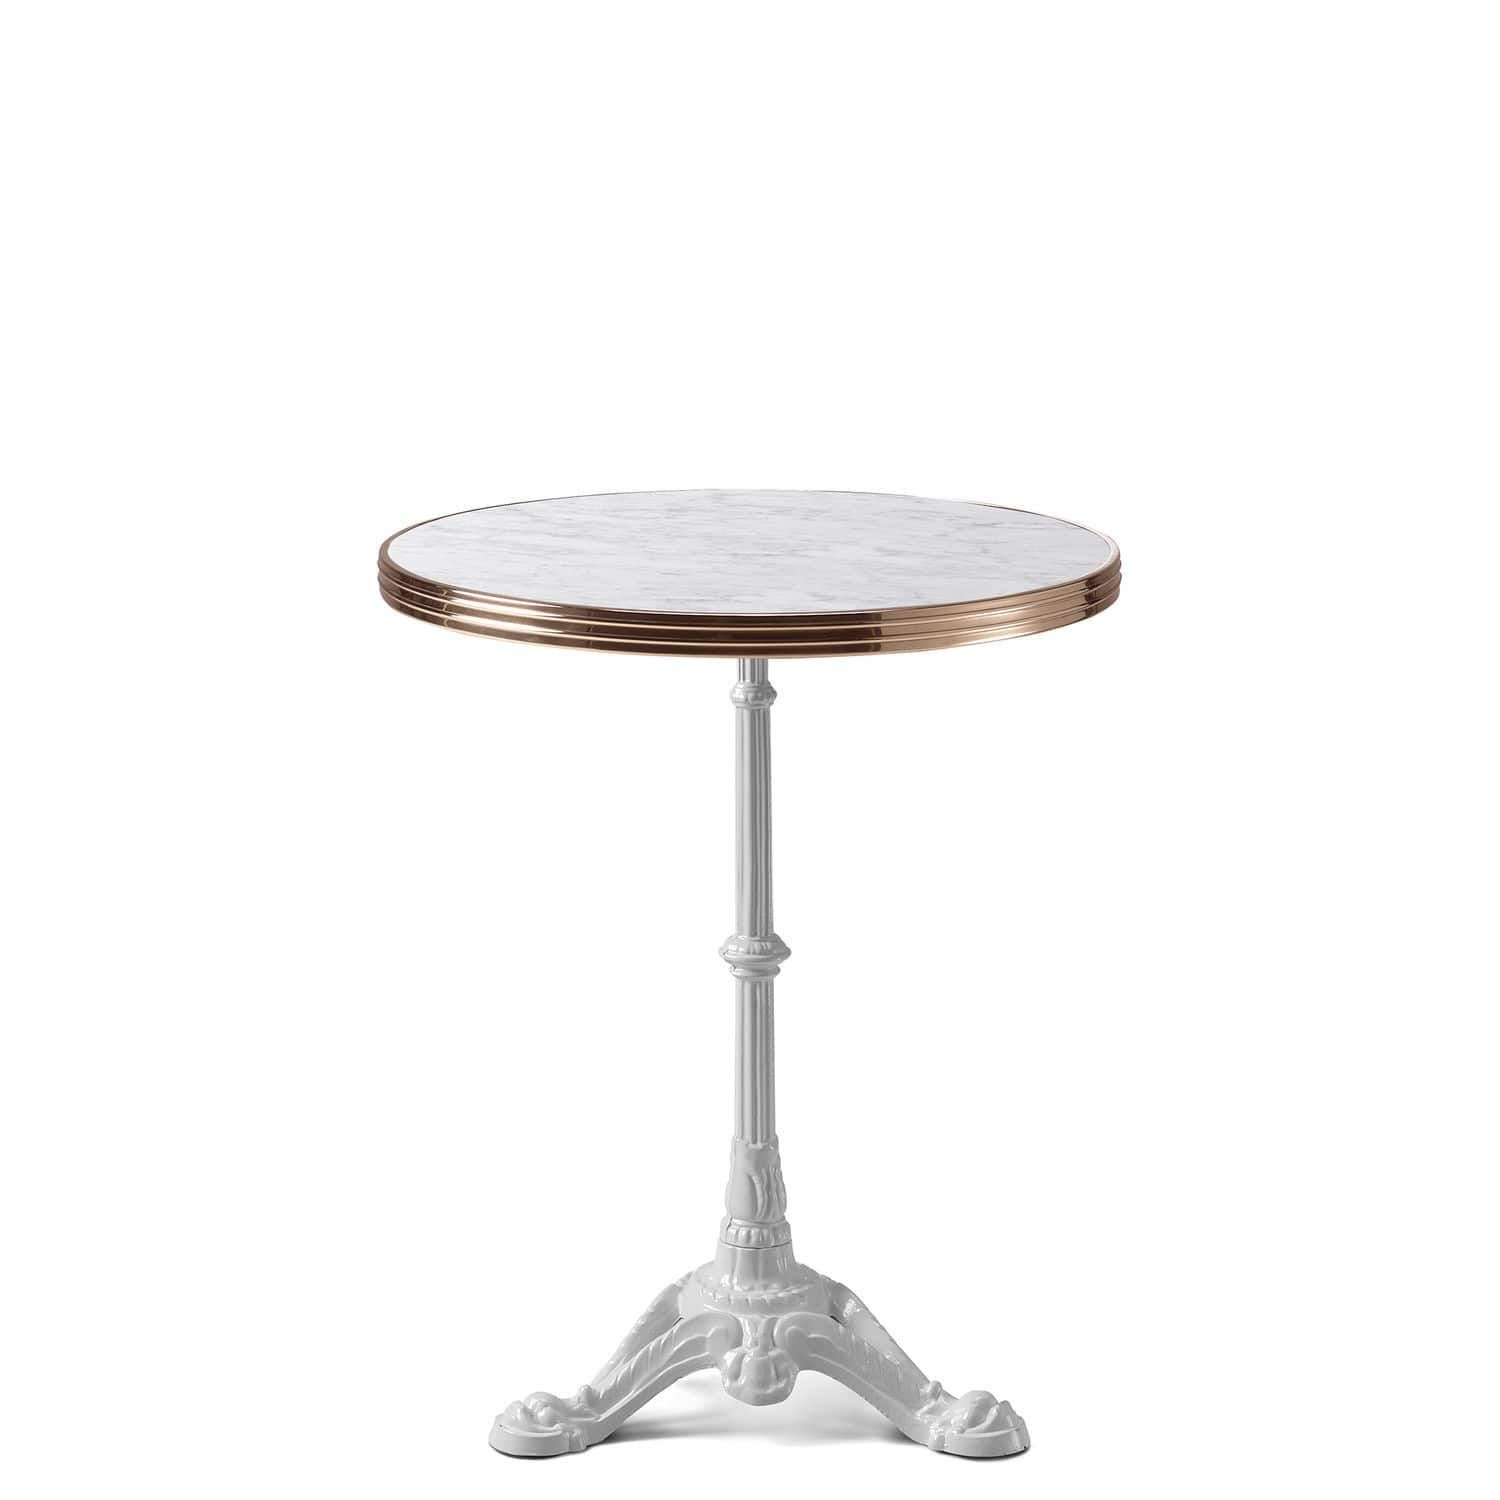 Pied Table Bistrot Table Bistrot Marbre Ronde Pied Fonte Good Mignon Table